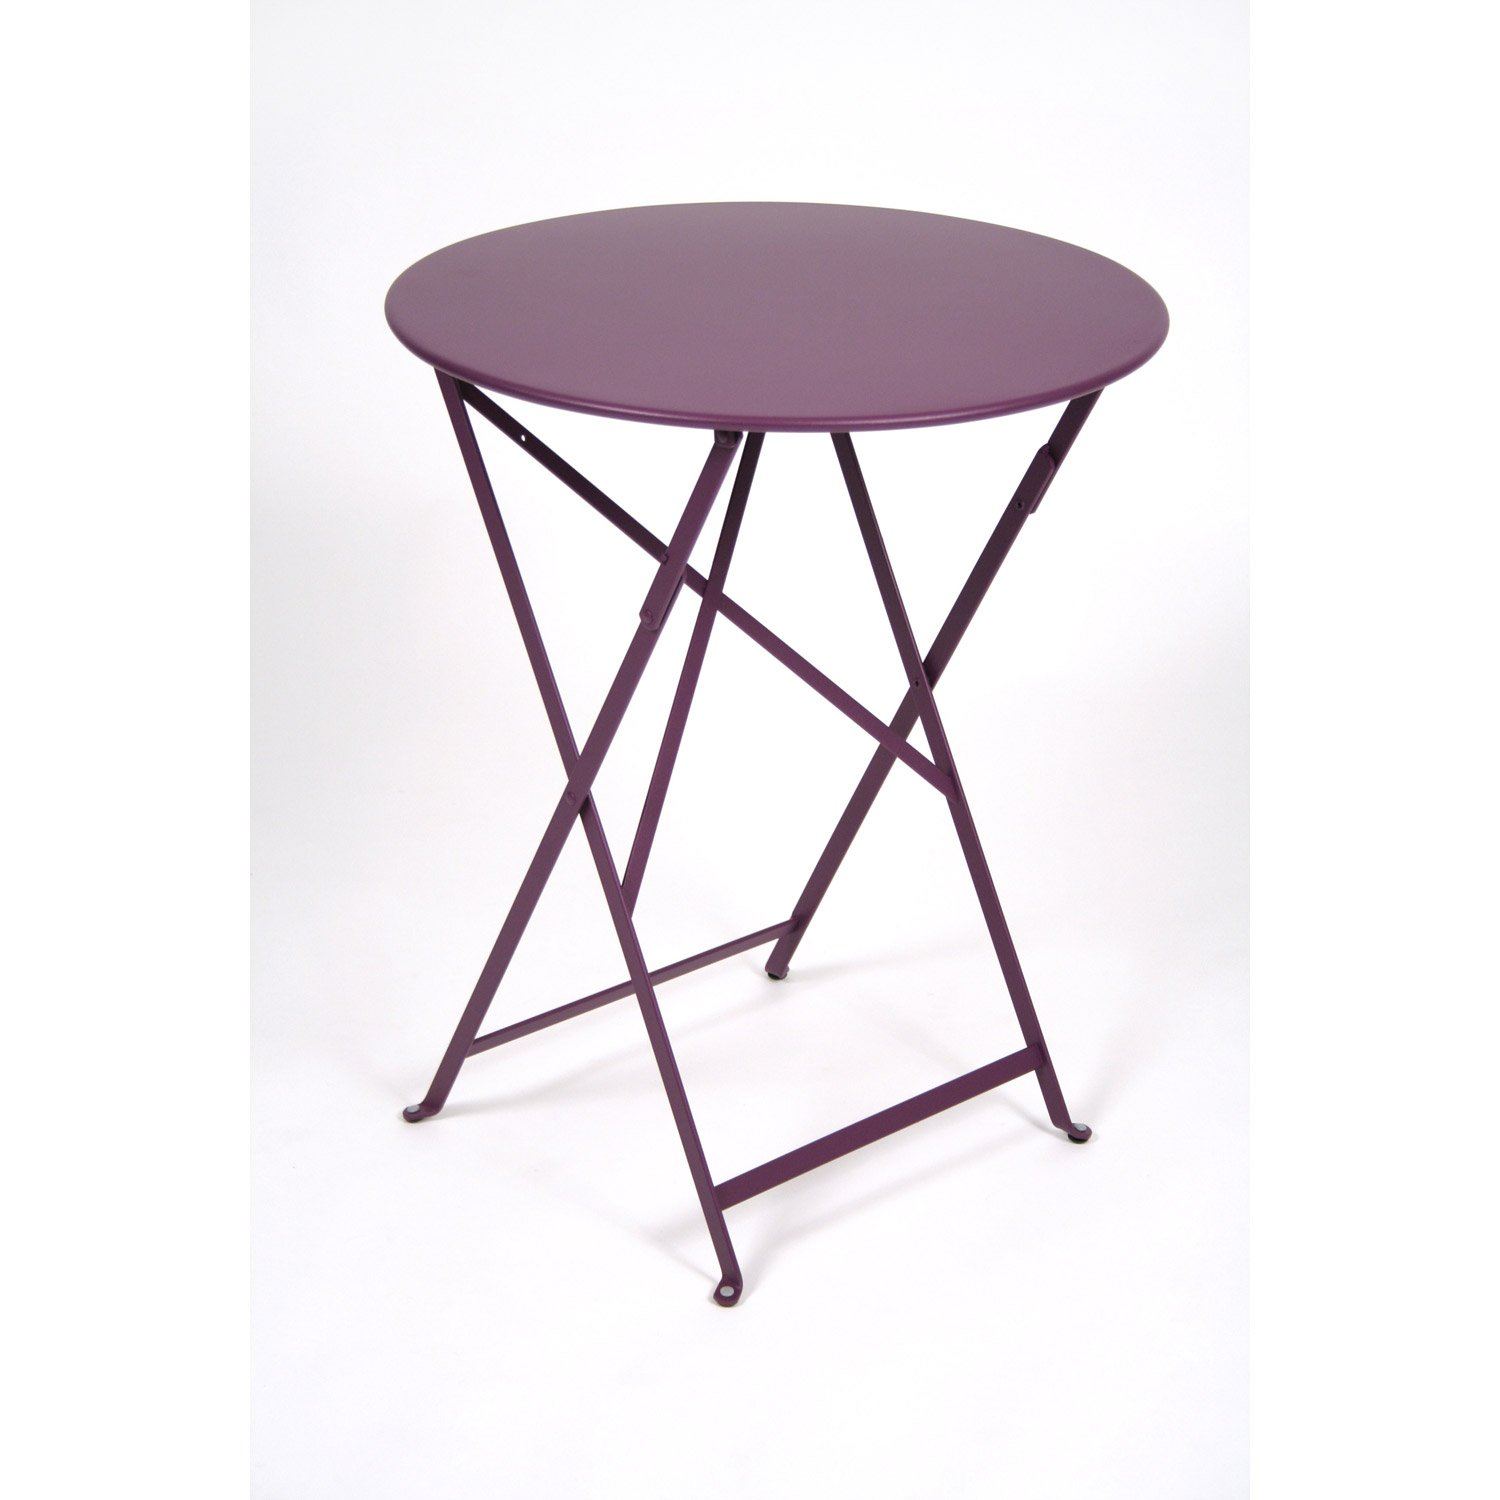 Table basse ronde en verre pas cher id es de d coration for Table ronde pas cher